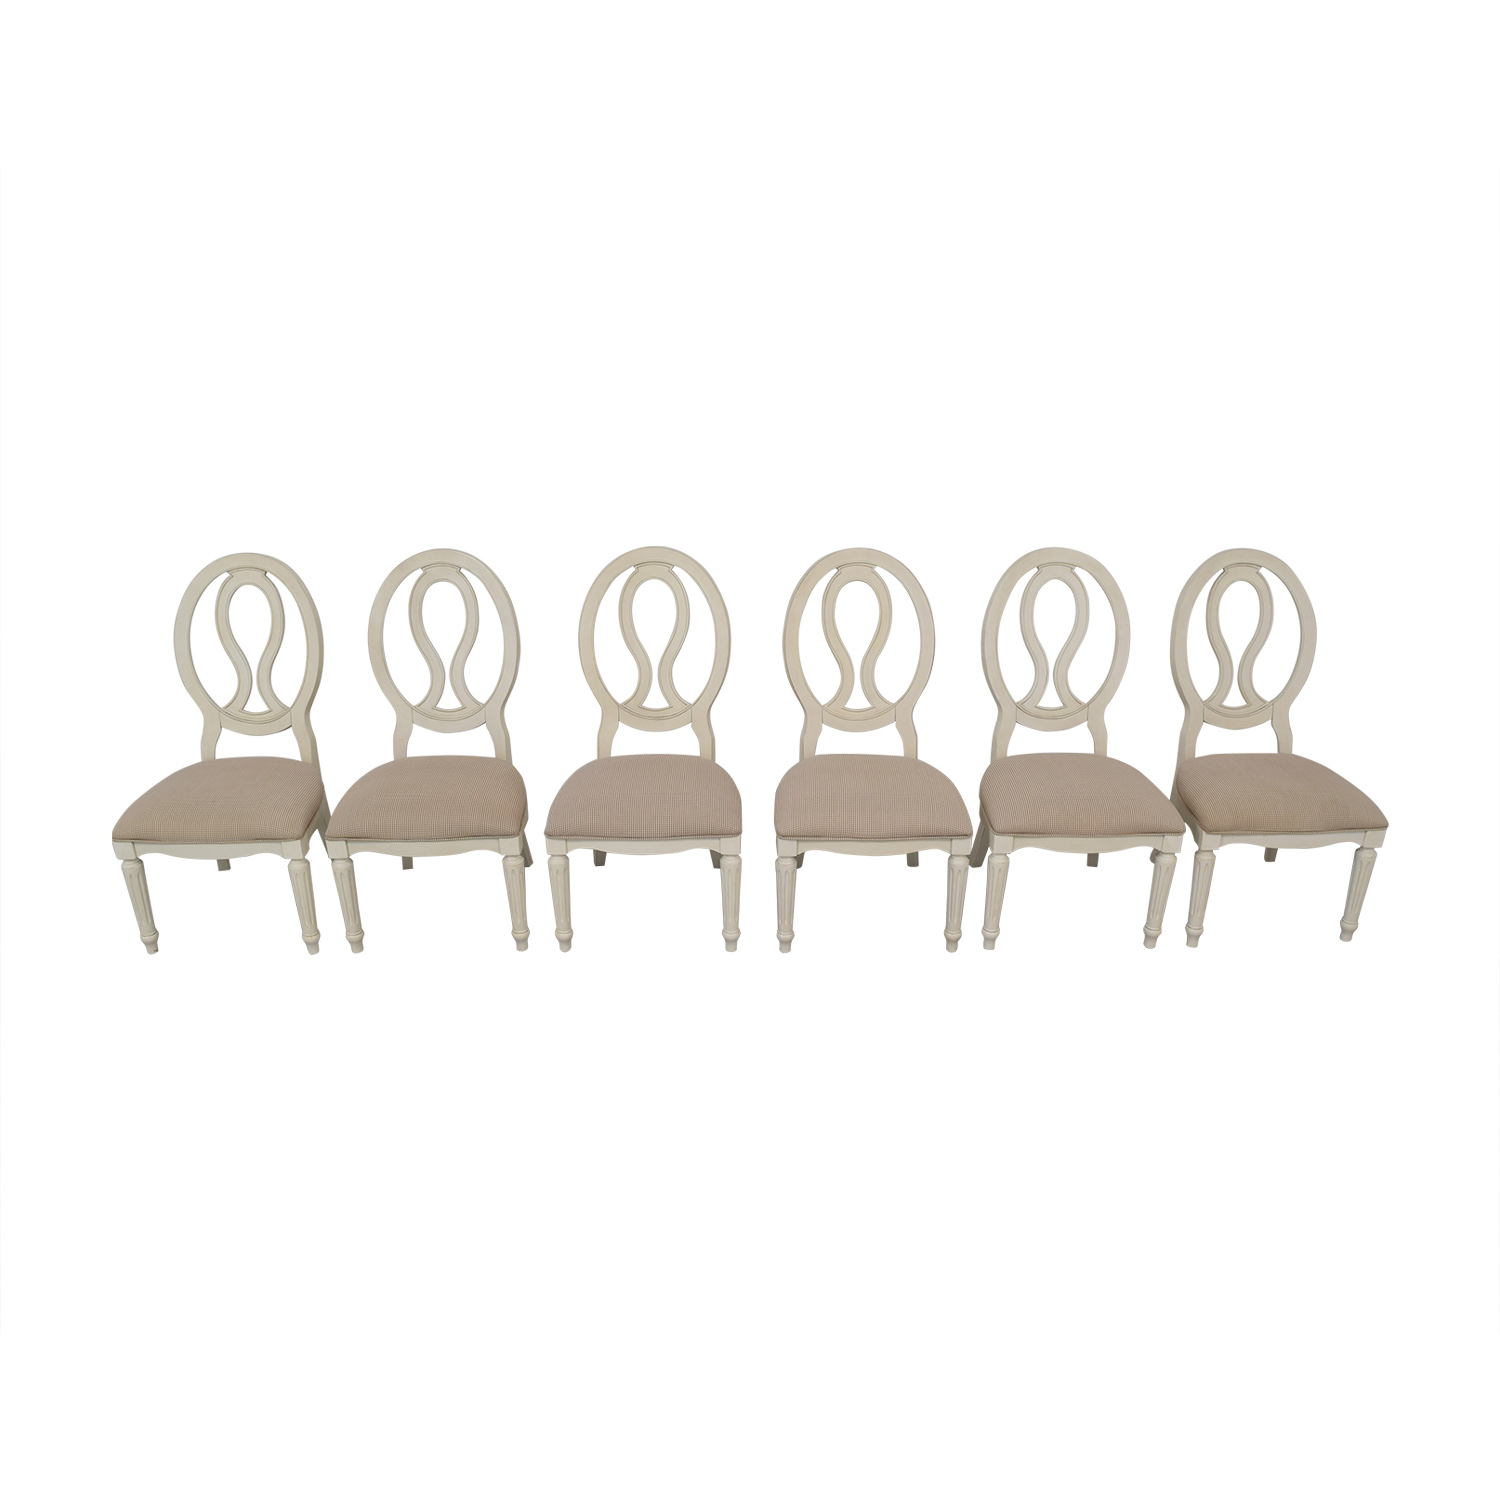 Universal Furniture Universal Furniture Pierced Back Side Chairs discount